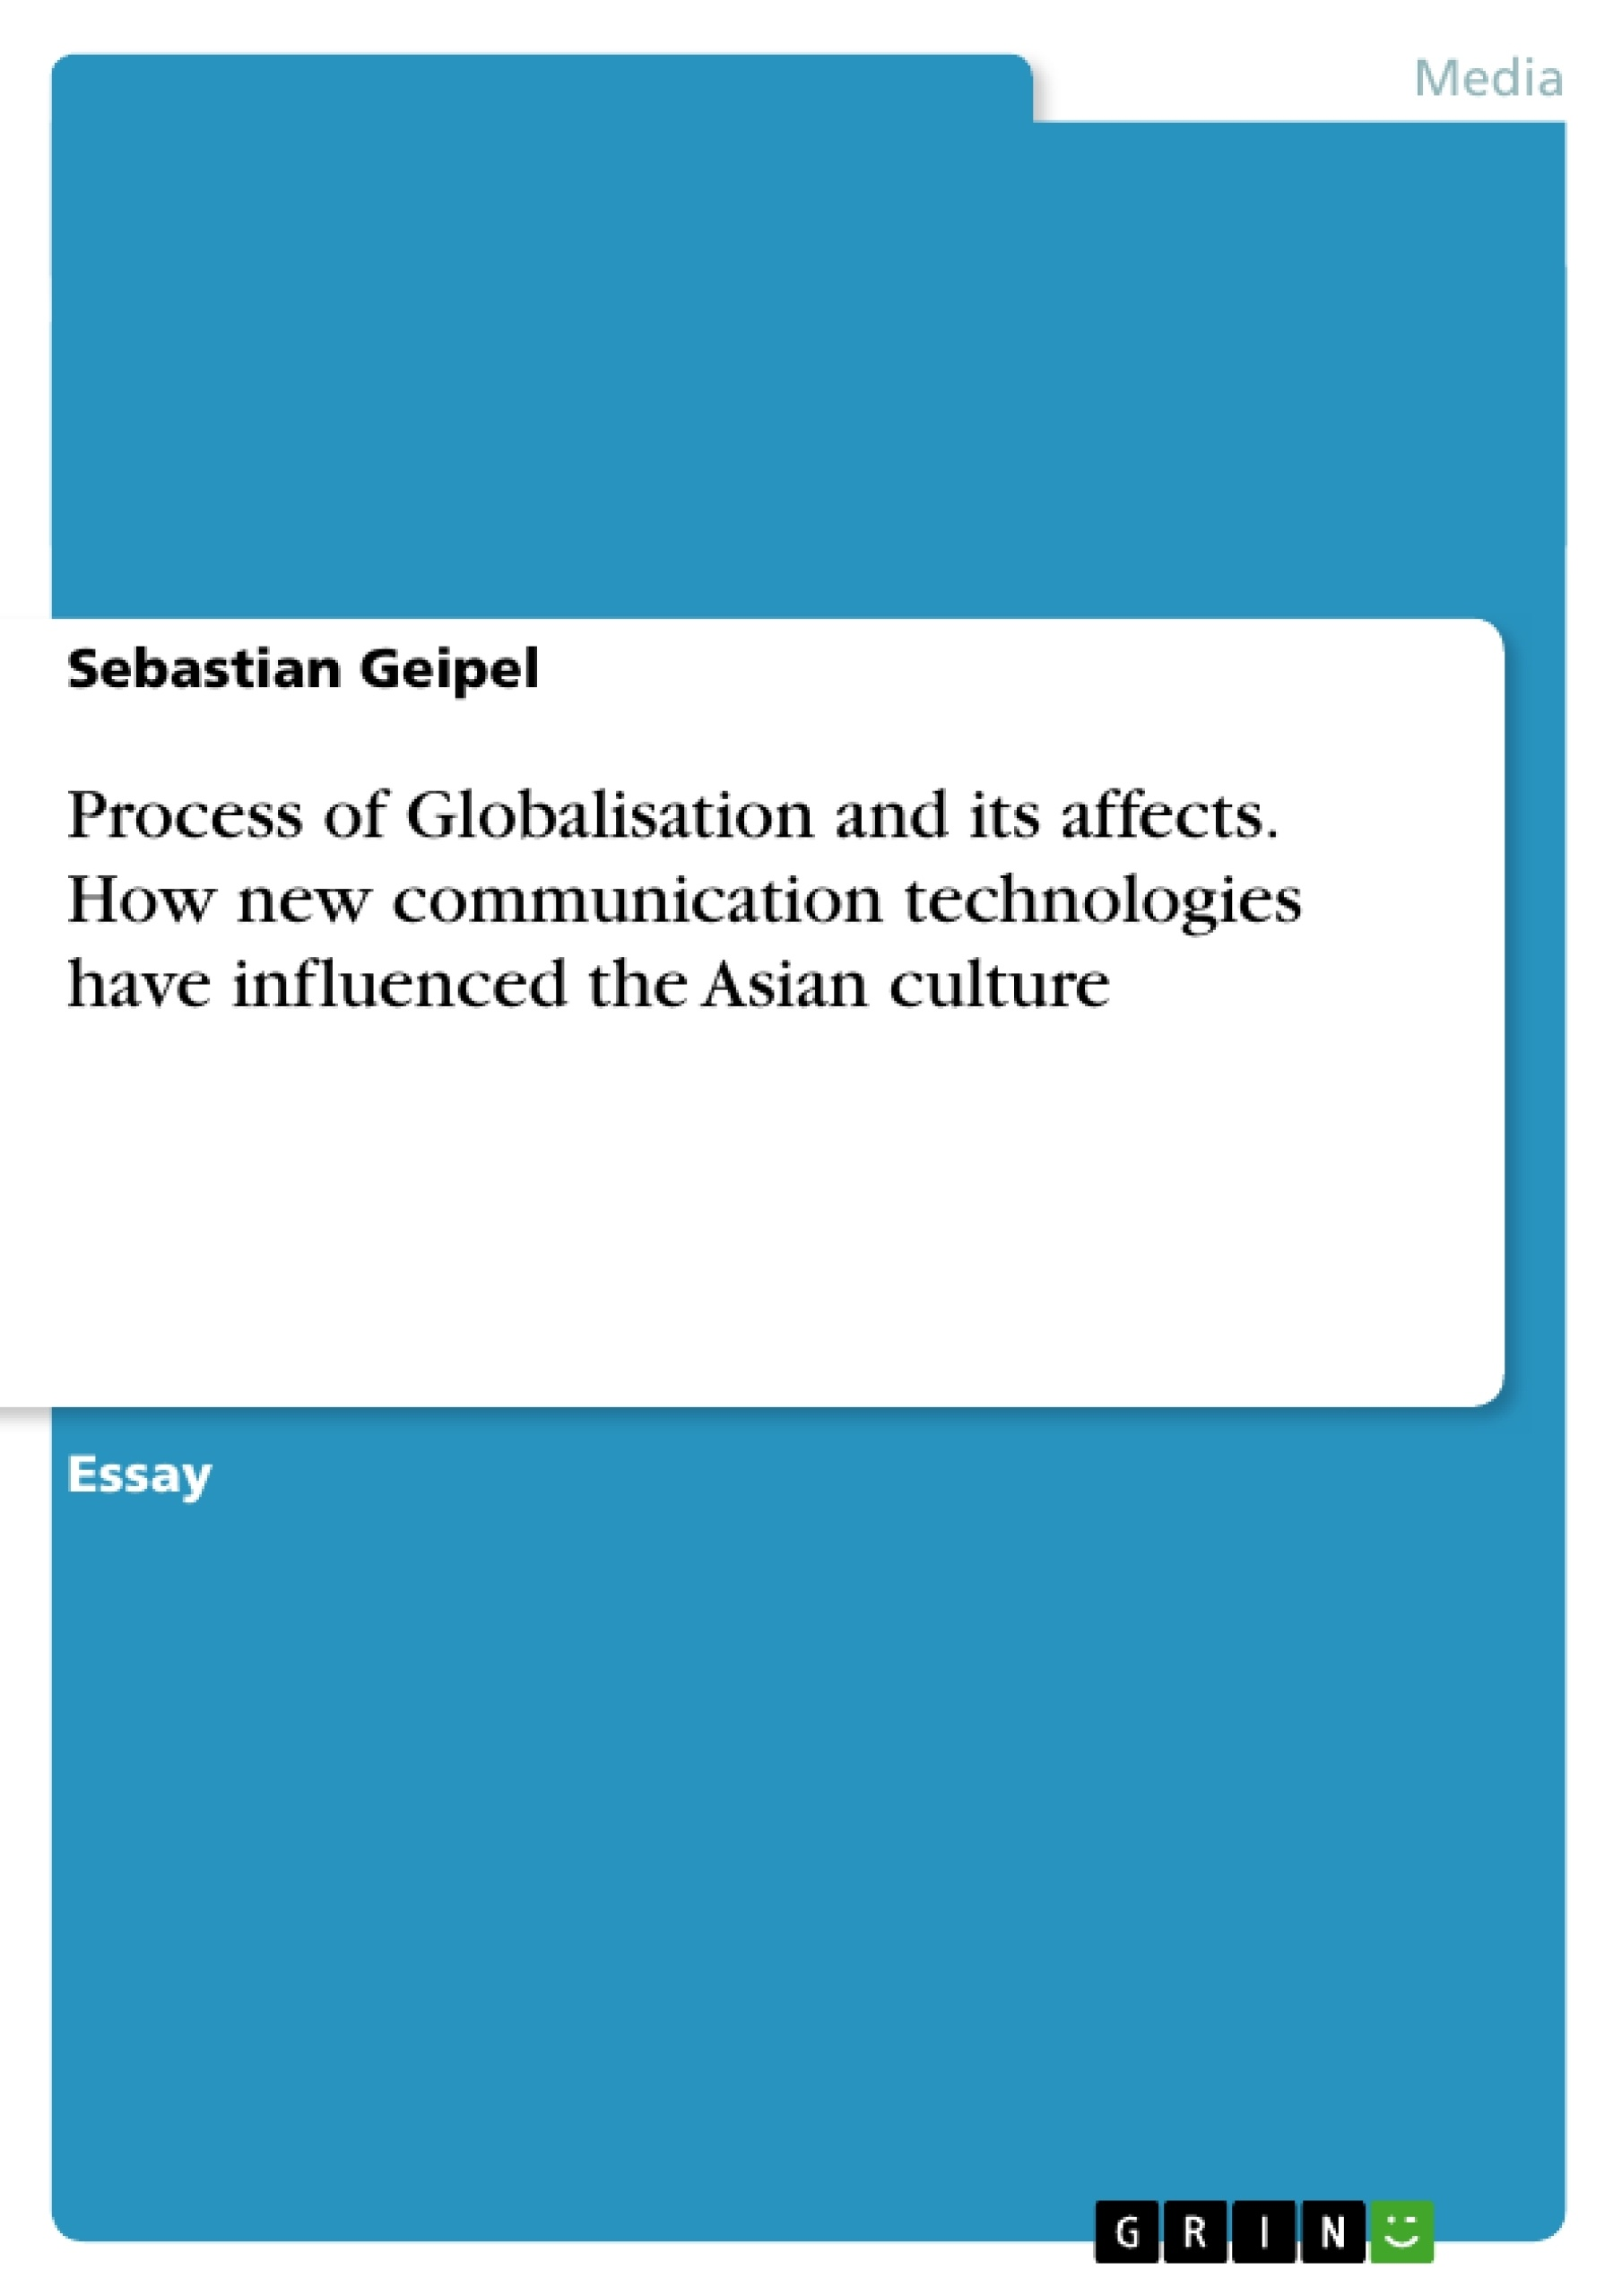 Title: Process of Globalisation and its affects. How new communication technologies have influenced the Asian culture